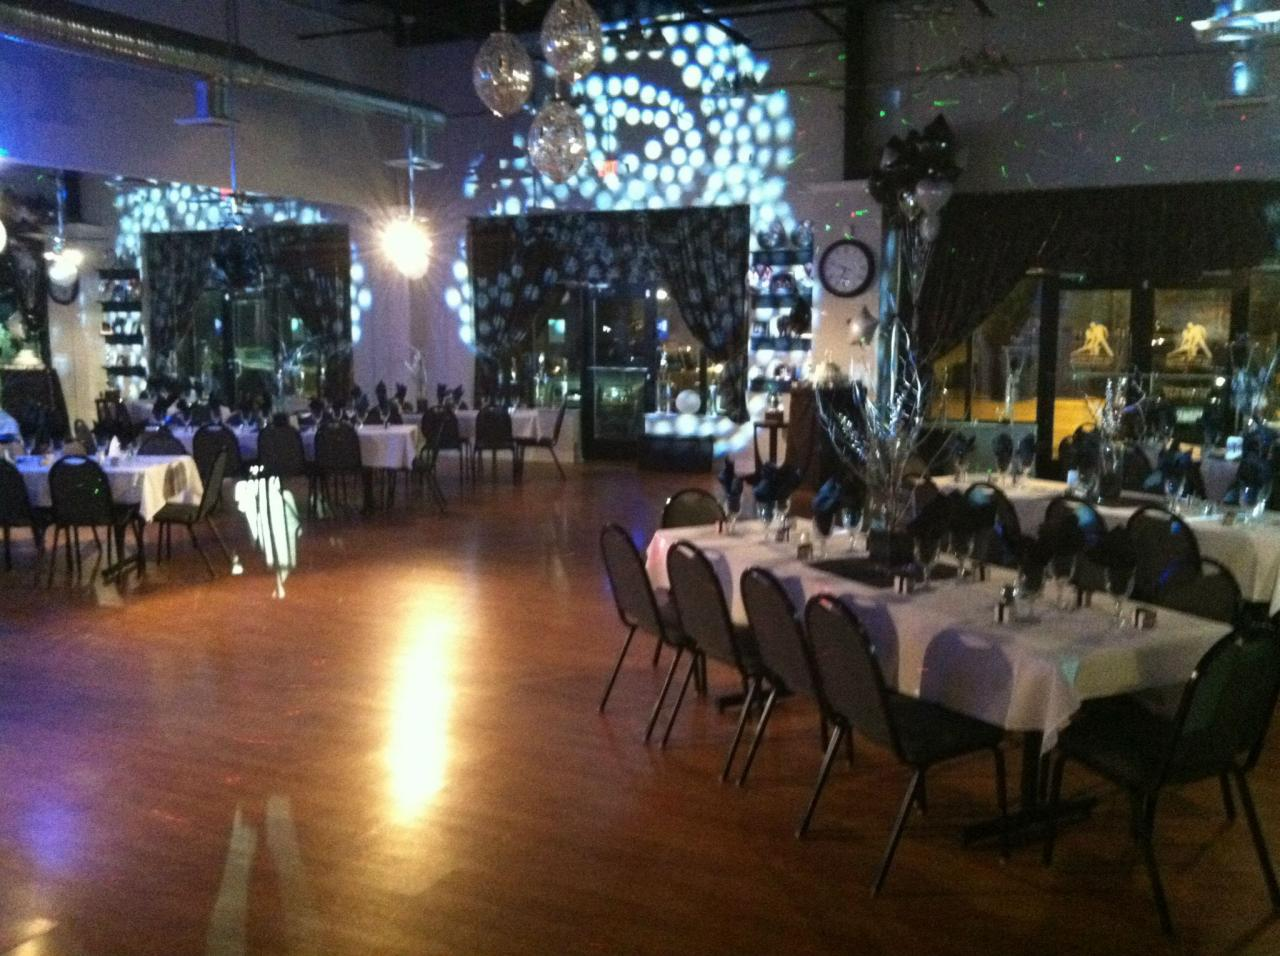 The mirror room charlotte event venue charlotte banquet hall party venue in fort mill sc junglespirit Choice Image